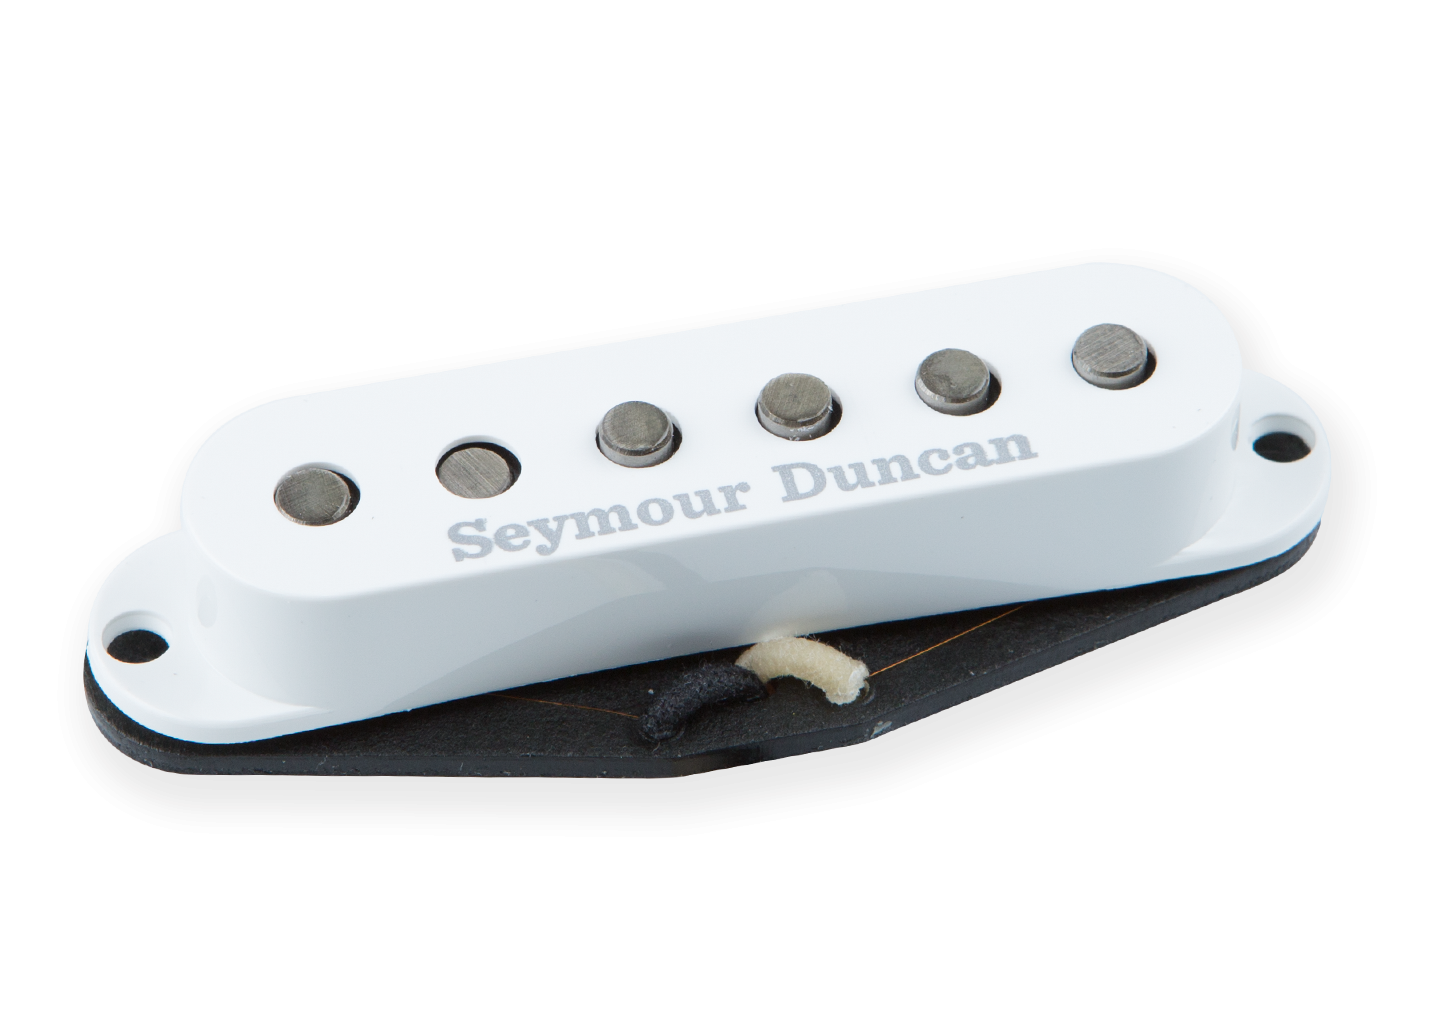 Seymour Duncan Alnico II Pro Staggered Strat APS-1 RW/RP Middle Left Hand